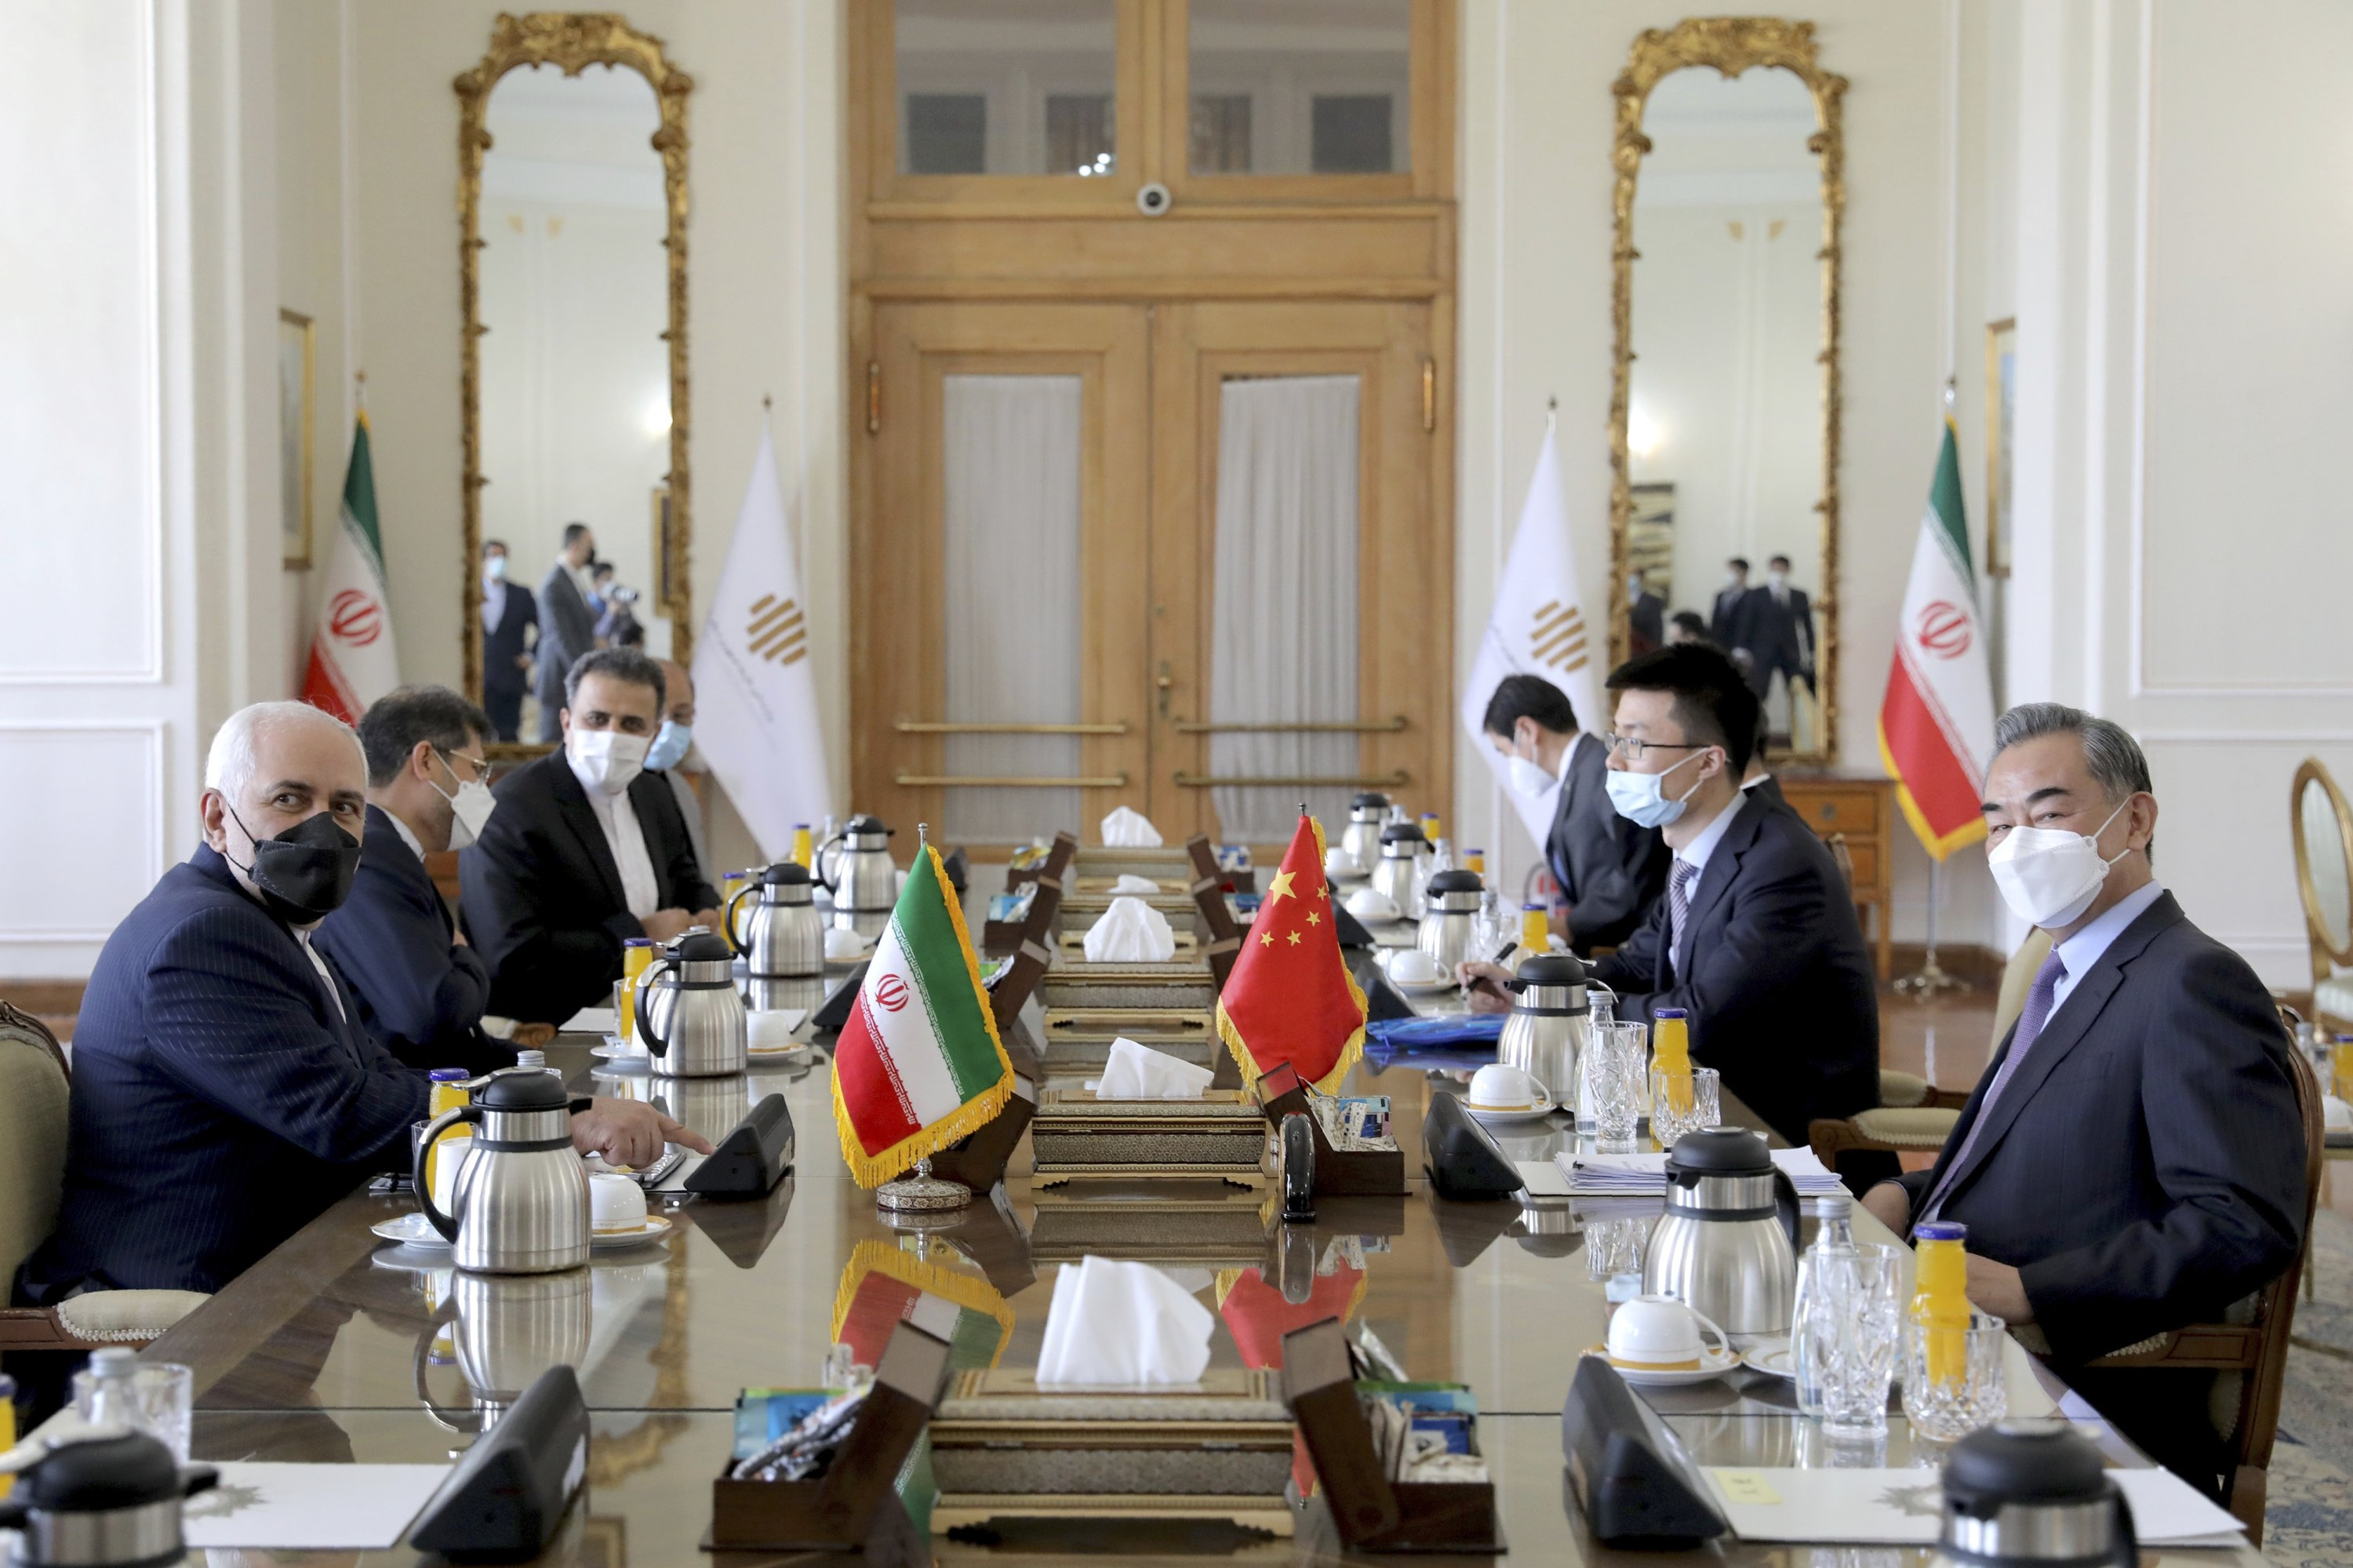 Iranian Foreign Minister Mohammad Javad Zarif (L) and Chinese Foreign Minister Wang Yi (R) attend a meeting, Tehran, Iran, March 27, 2021. (AP Photo)